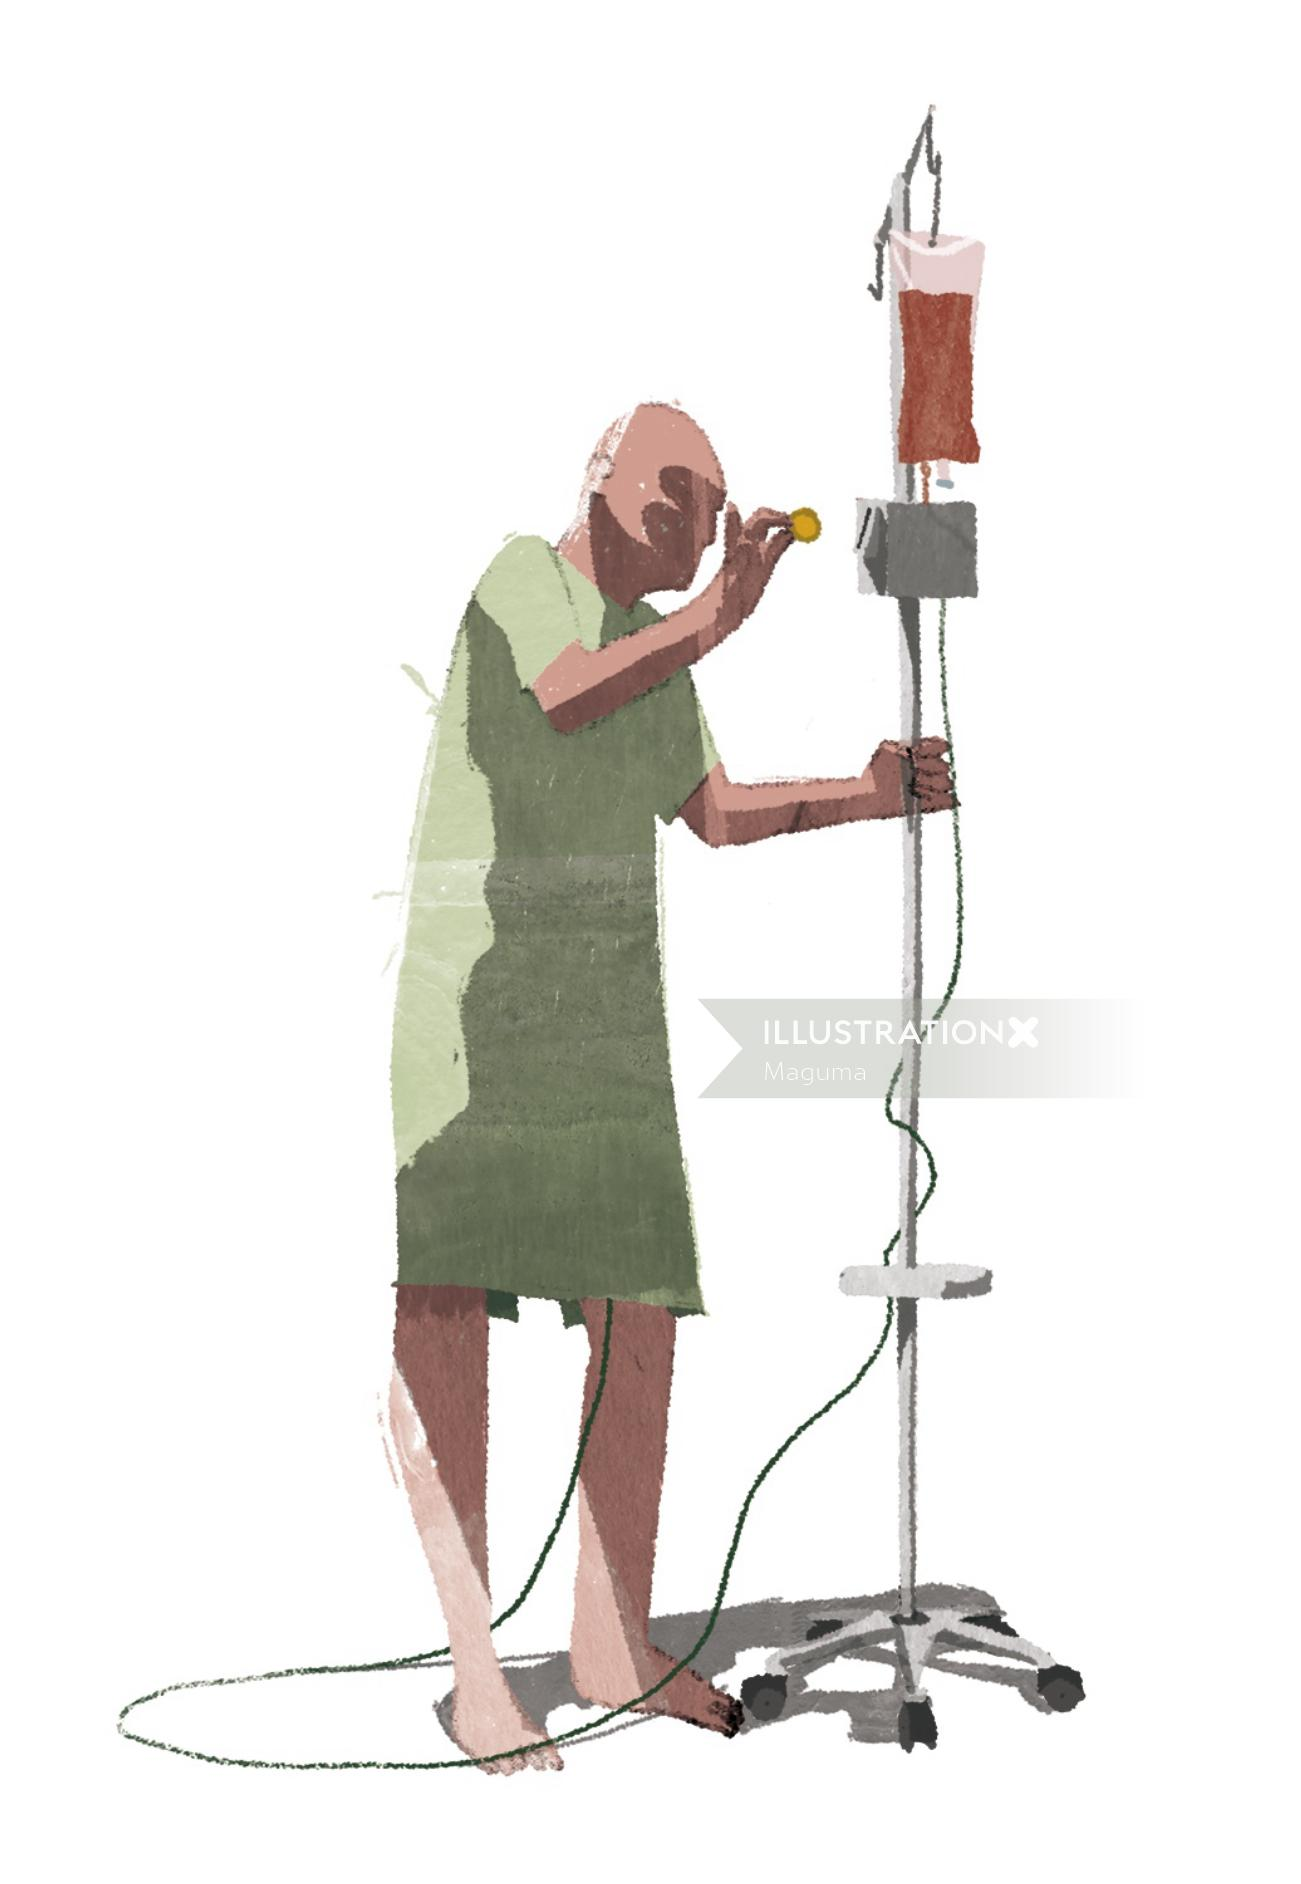 status of present healthcare represented by old man paying for blood